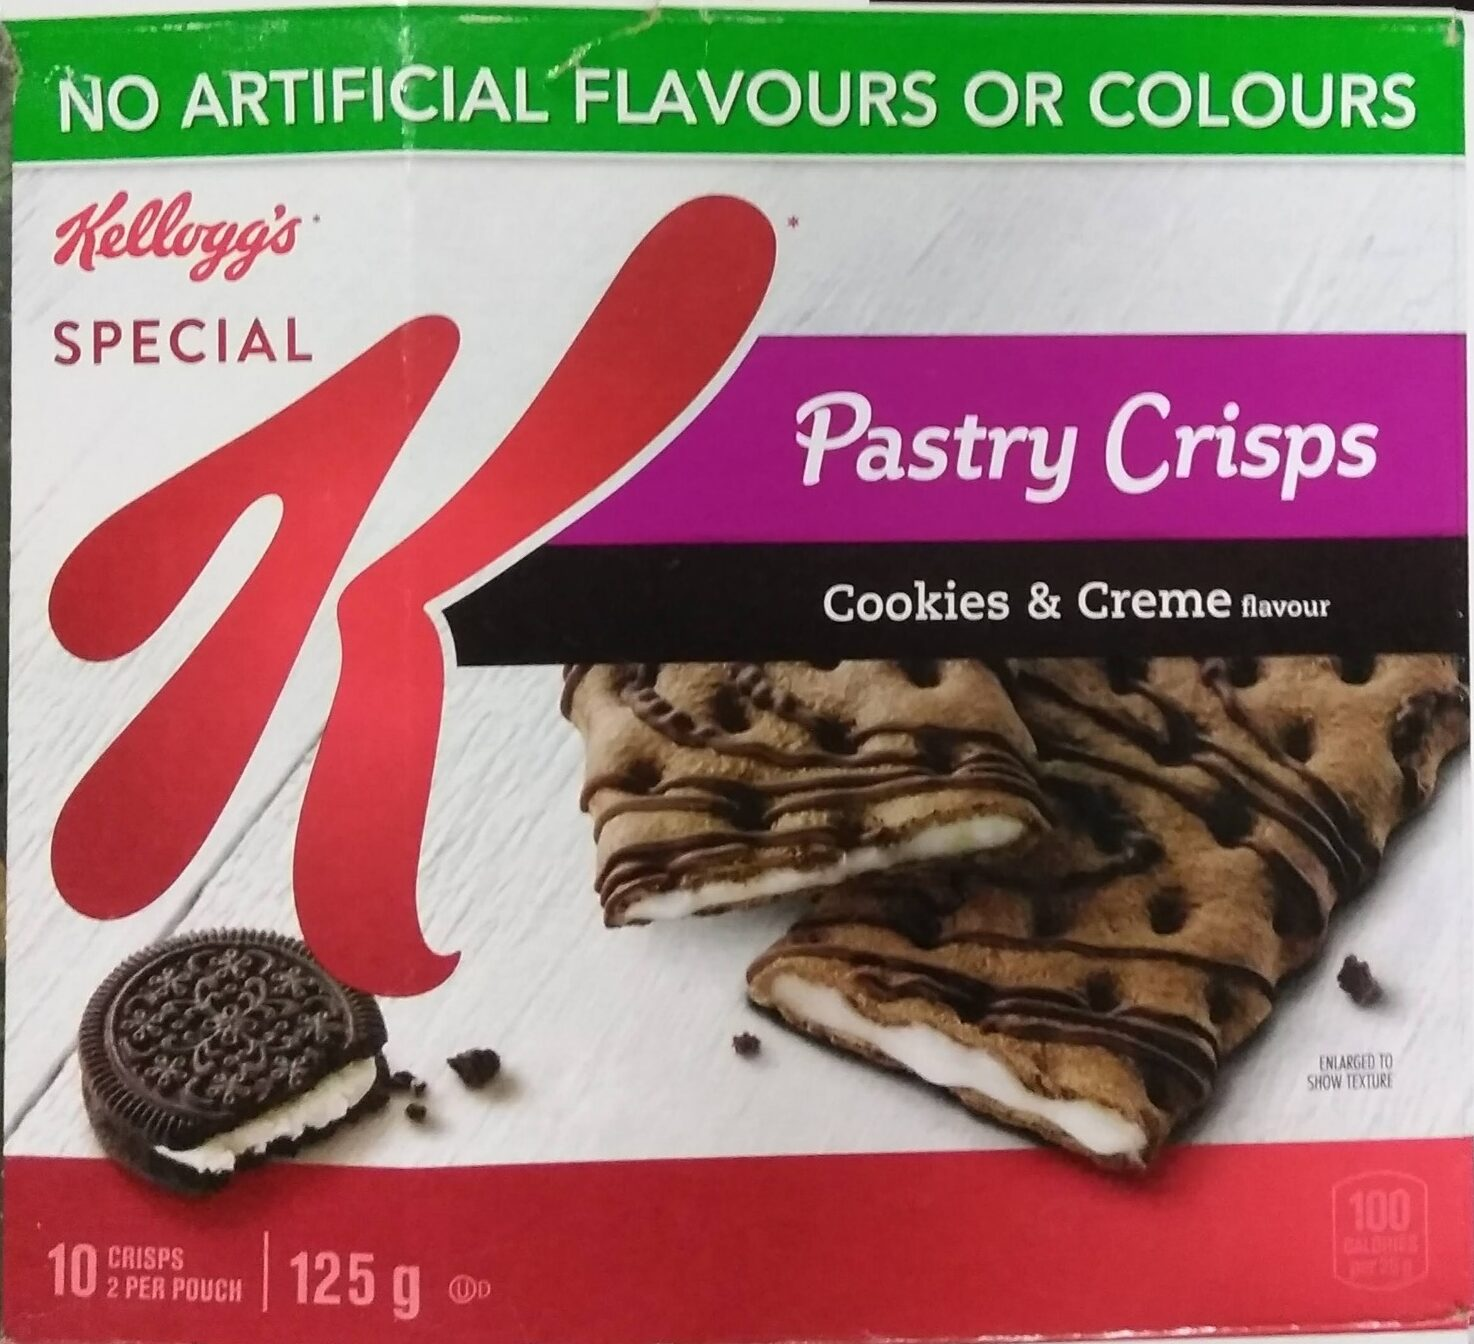 Pastry Crisps Cookies & Creme Flavour - Product